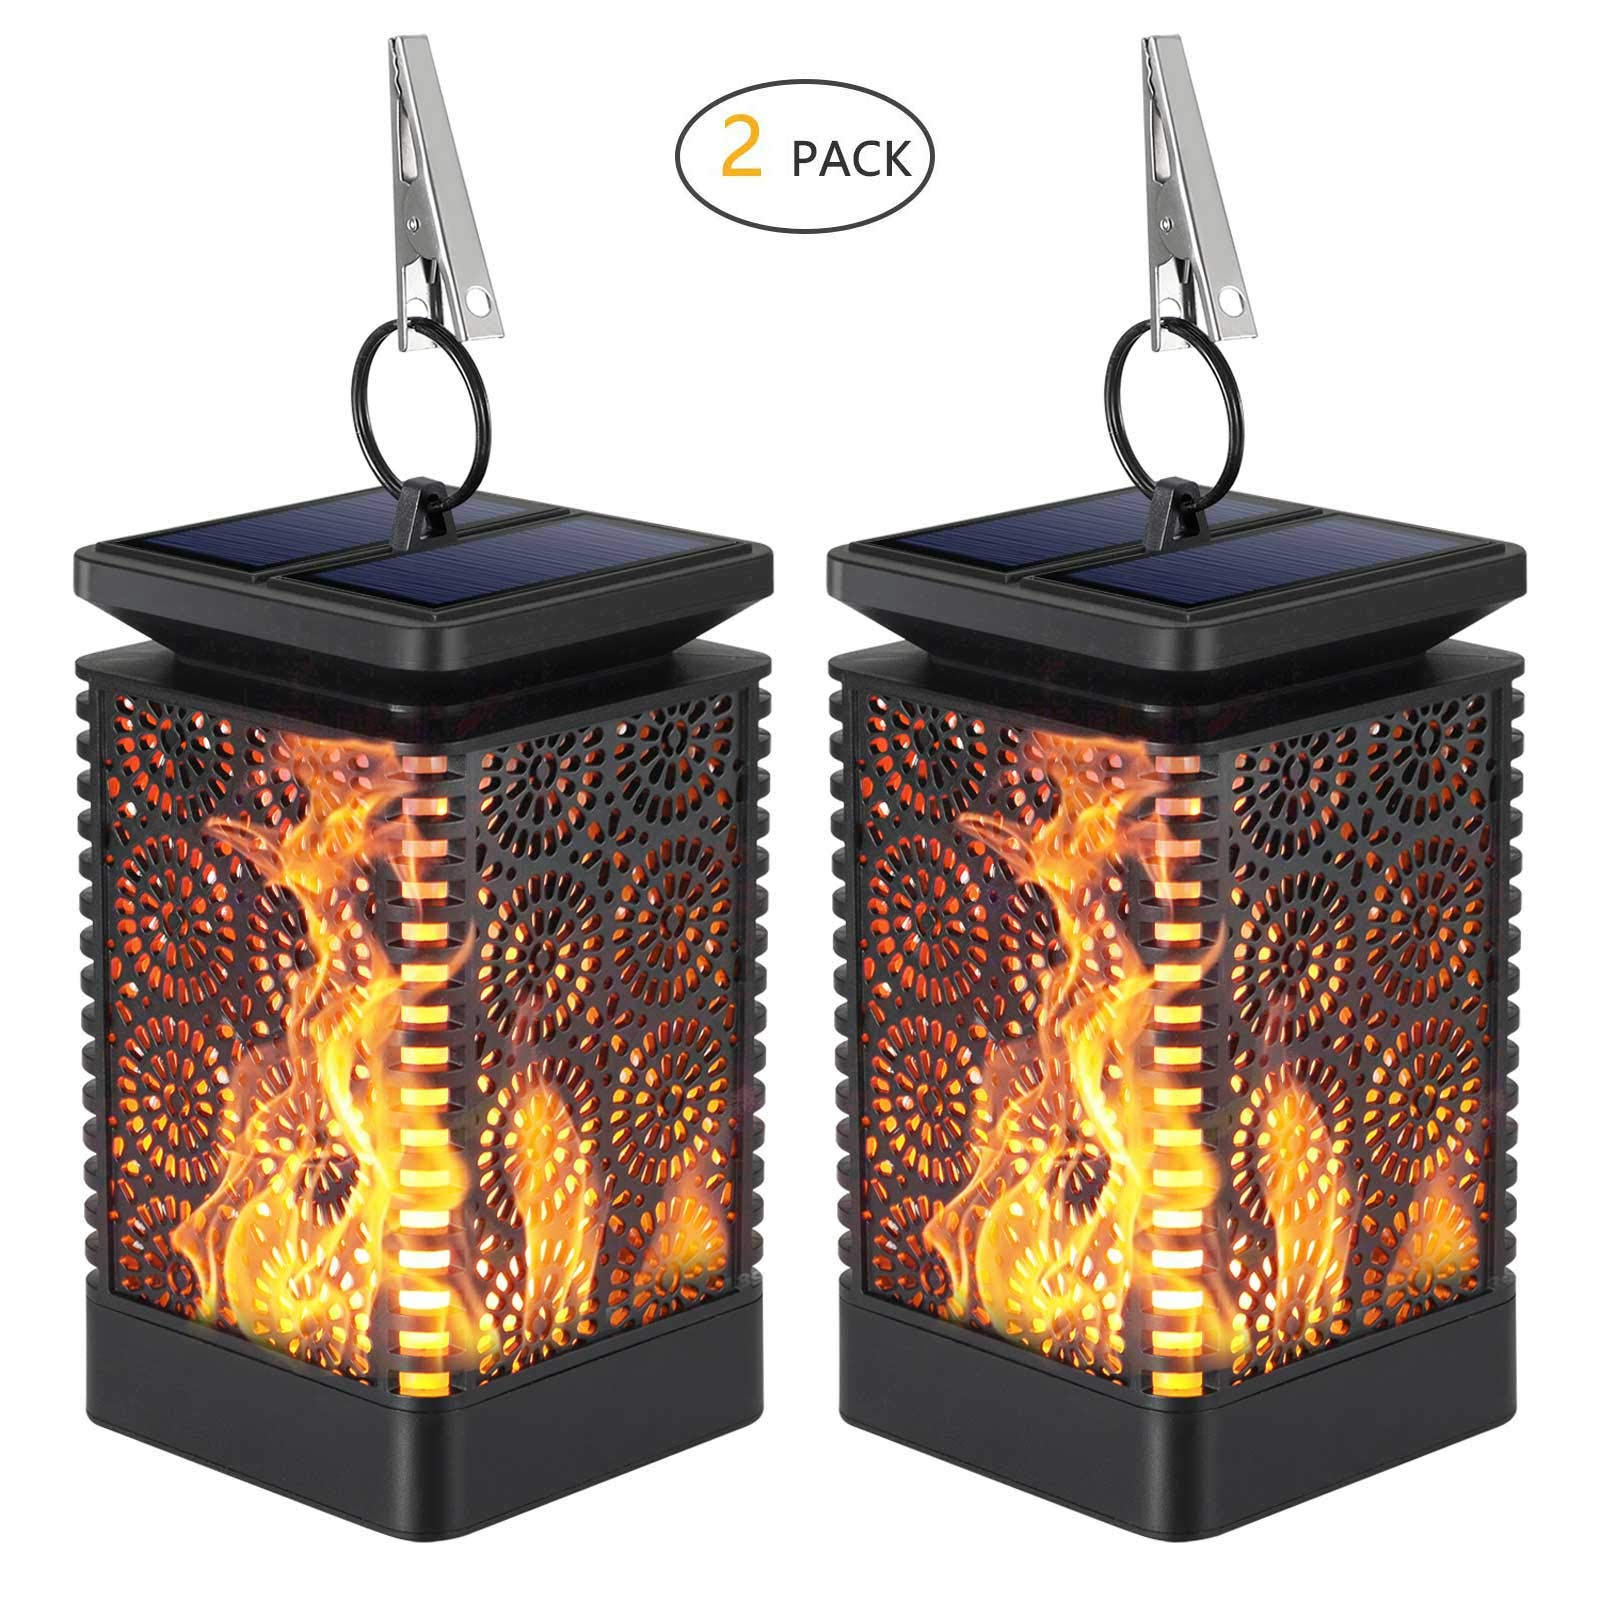 Solar Lantern Outdoor Lights,KINGCOO Dancing Flames Lights Waterproof Hanging Lanterns Solar Yard Lights Auto On/Off Lighting Dusk to Dawn 99 Bright LED for Garden Decor (2 Pack) by KINGCOO